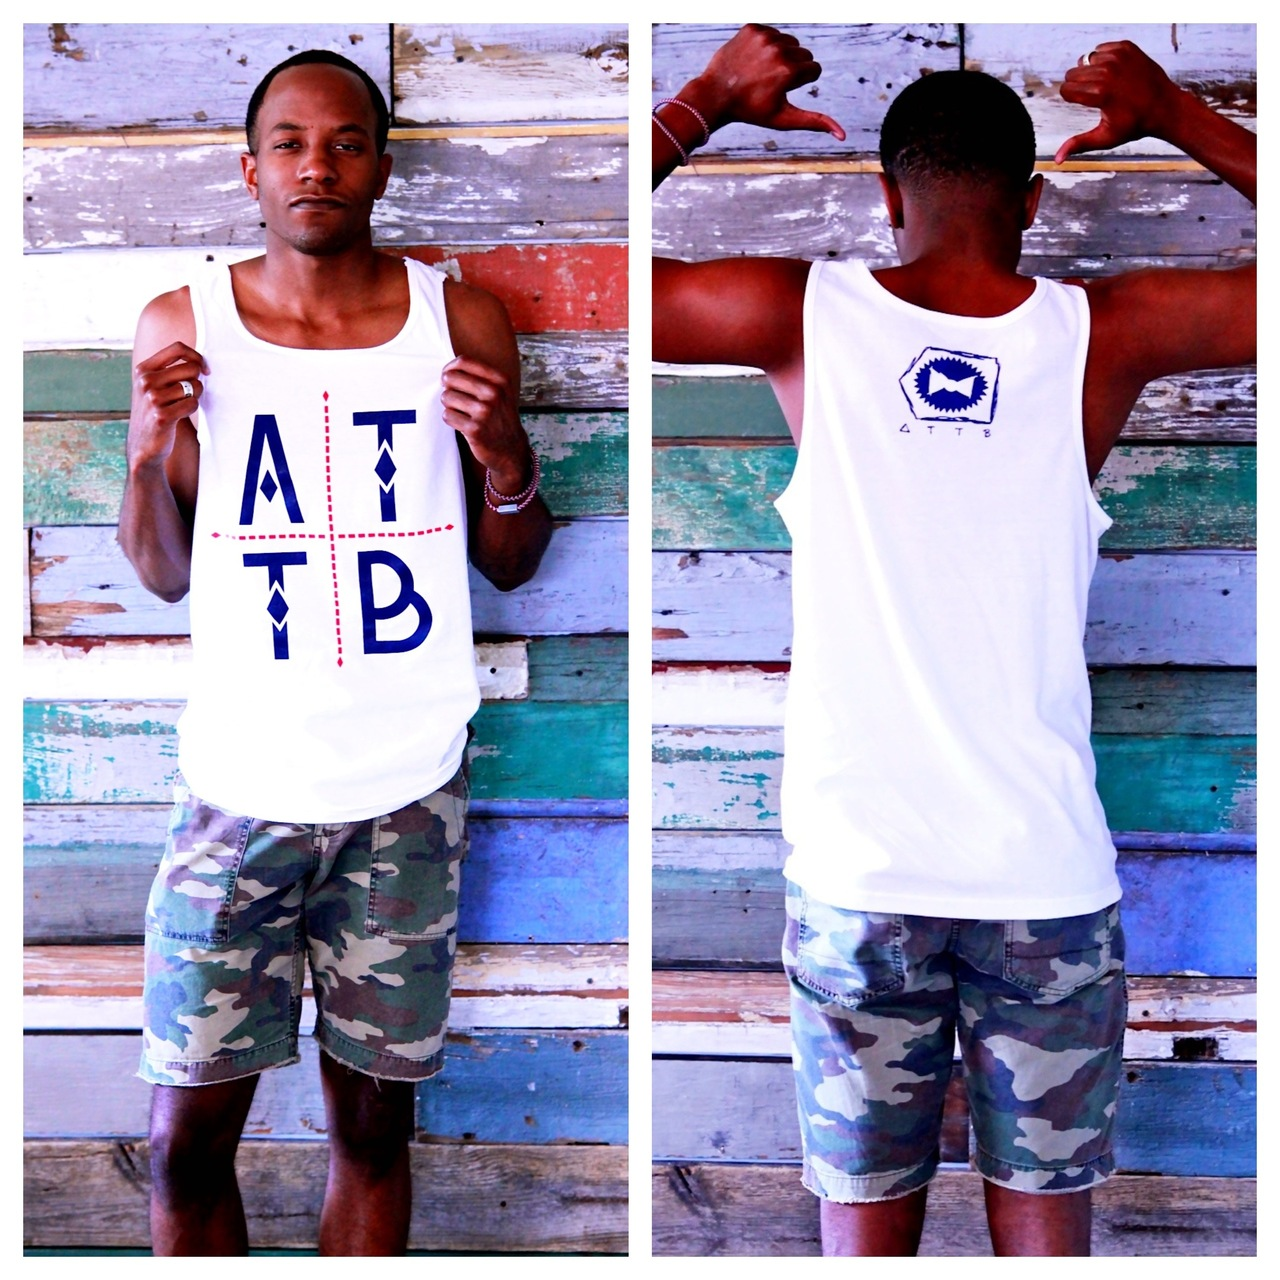 """#TankProof tanks! #ATTB Get yours today! Courtesy of Magpie Café, Baton Rouge, LA… Photo by Jeremiah """"Foto"""" Phillips, editing by AskTheThomasBros"""